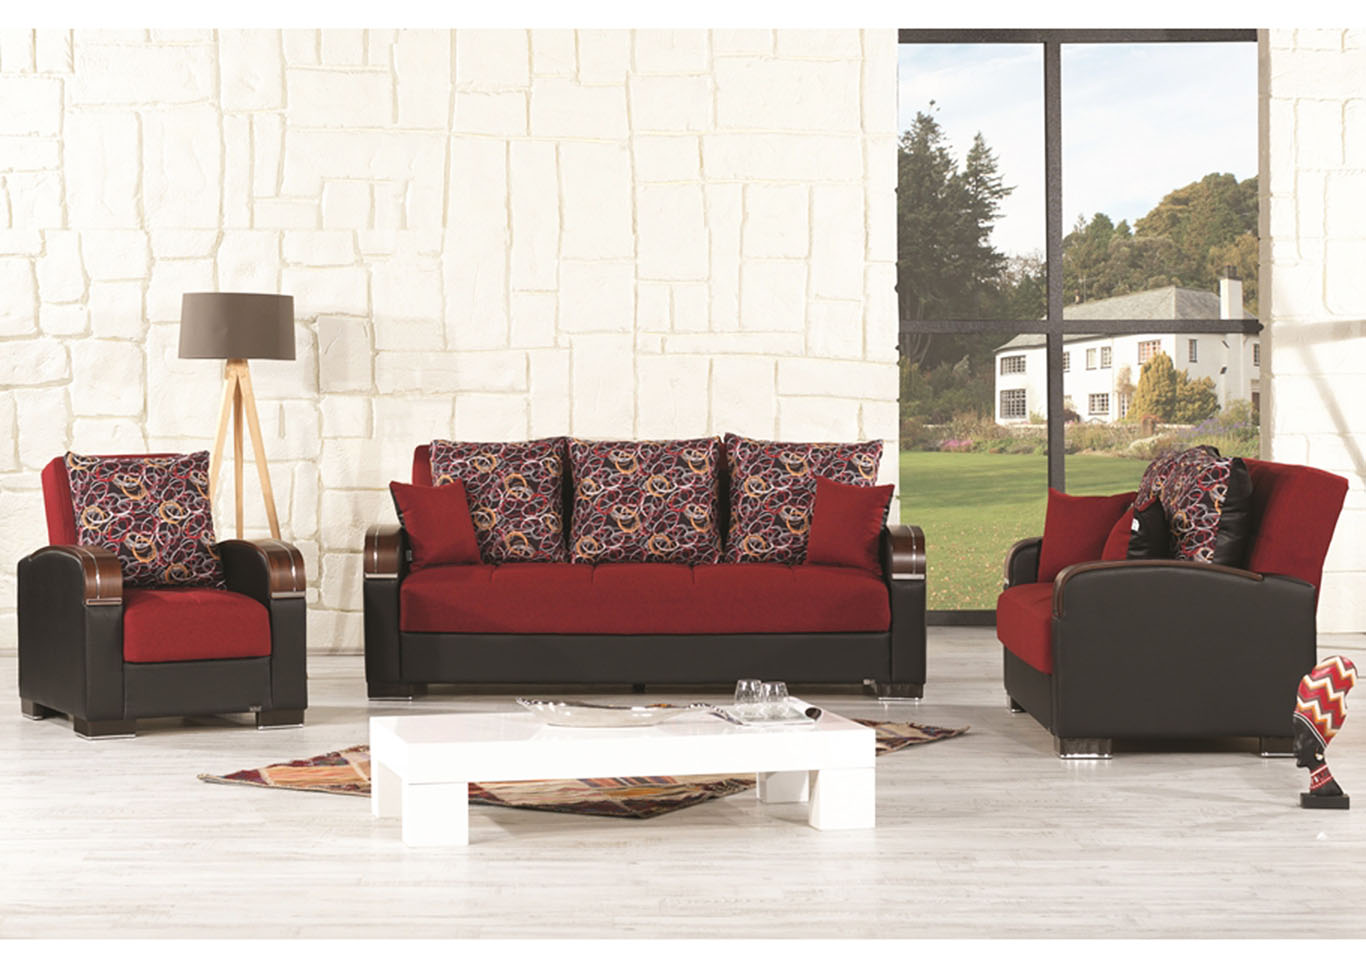 Mobimax Red Polysester Sofabed, Loveseat & Chair,CasaMode Functional Furniture